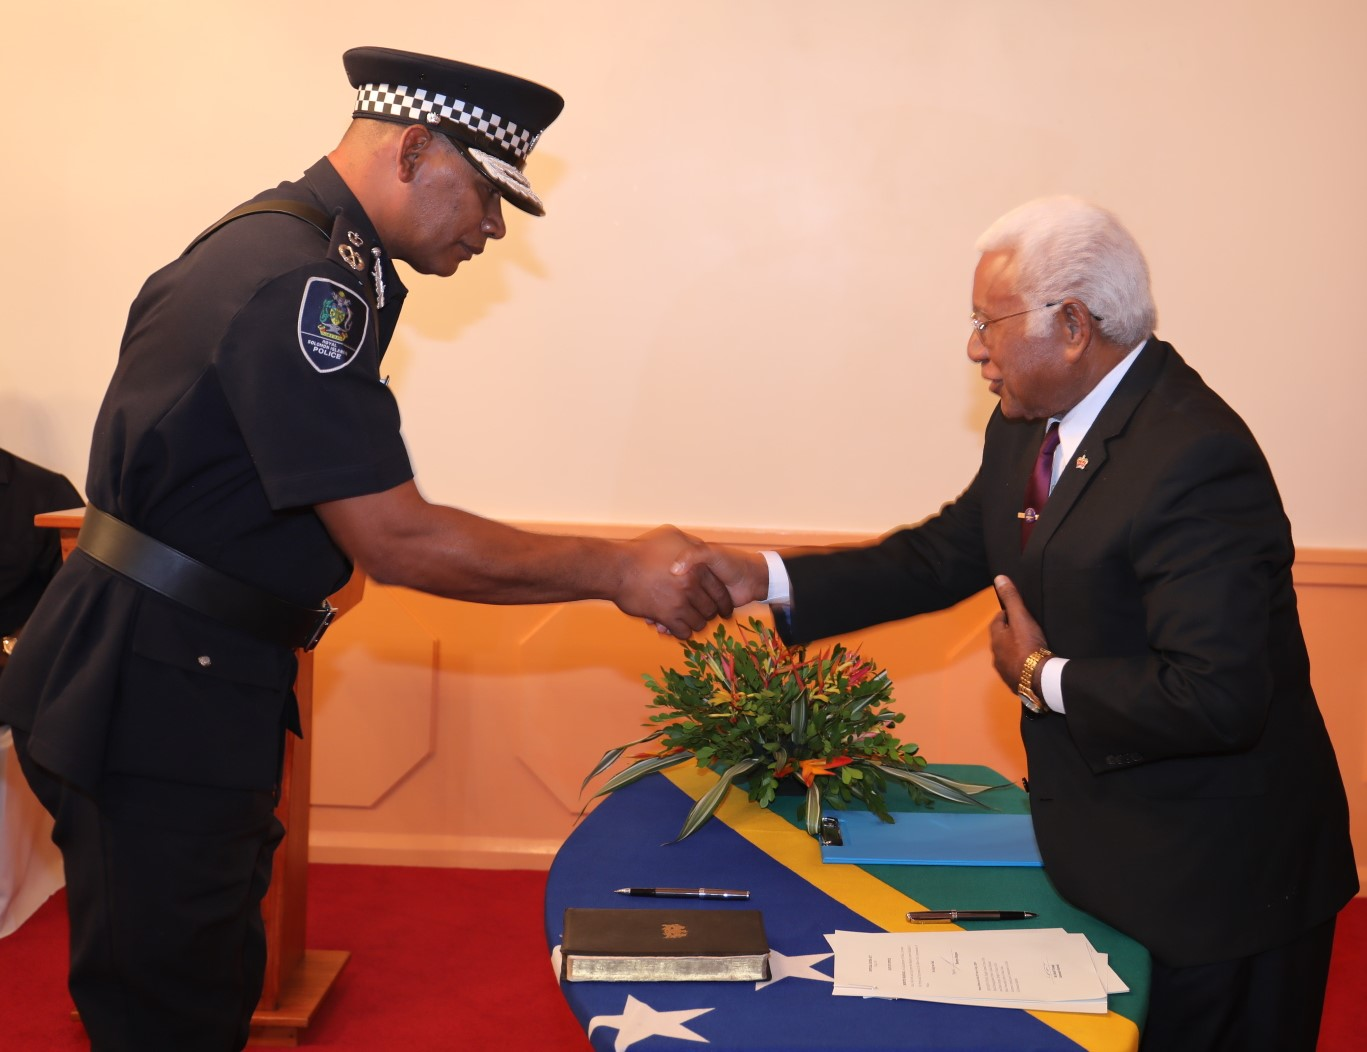 MANGAU SWORN-IN AS NEW POLICE COMMISSIONER